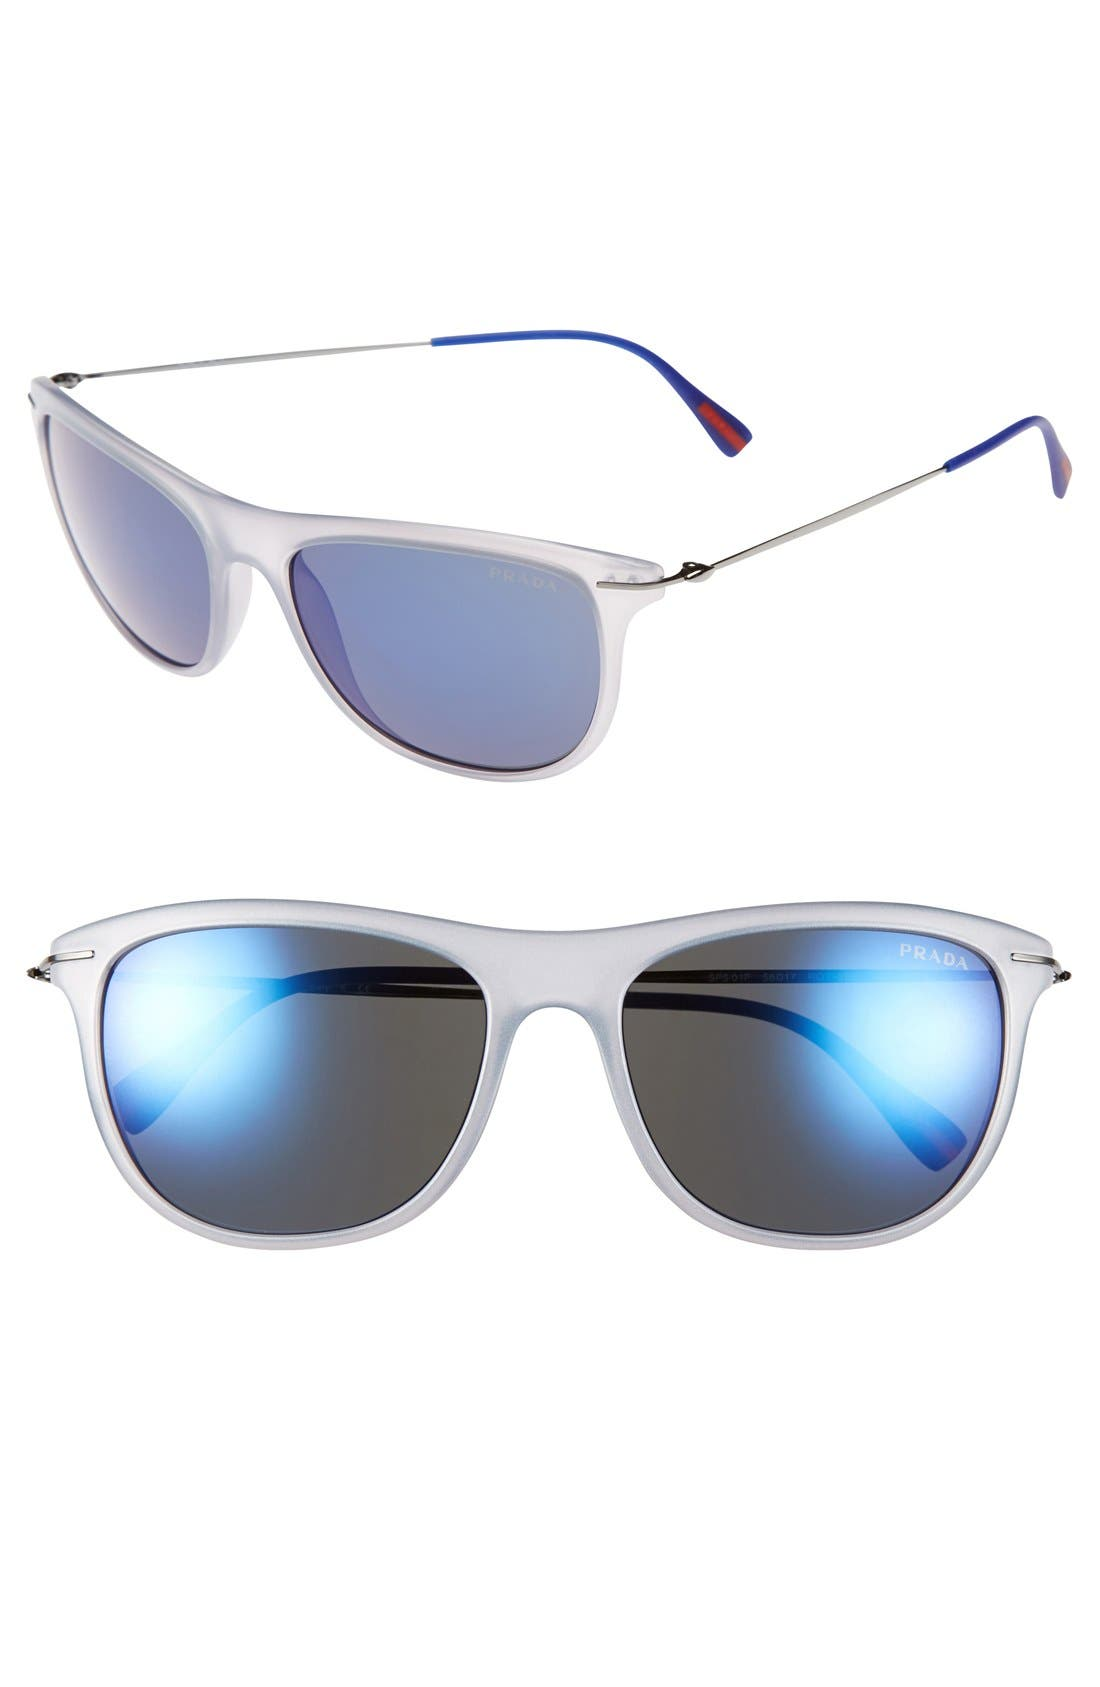 Alternate Image 1 Selected - Prada 'Pilot' 56mm Sunglasses